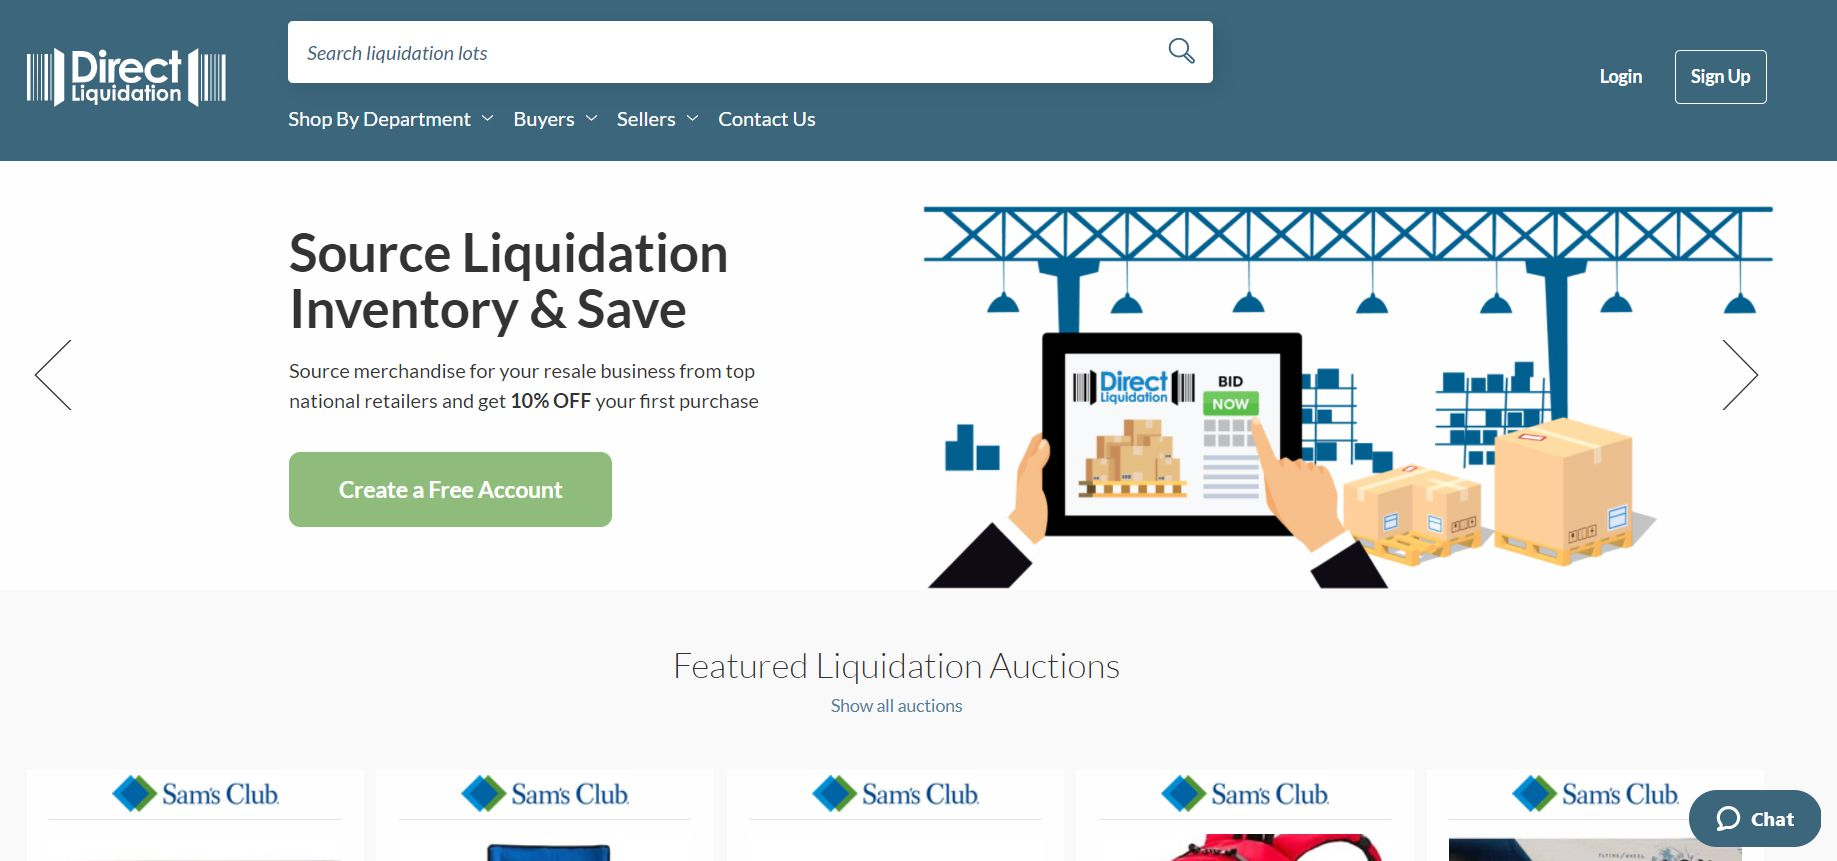 The Direct Liquidation home page.